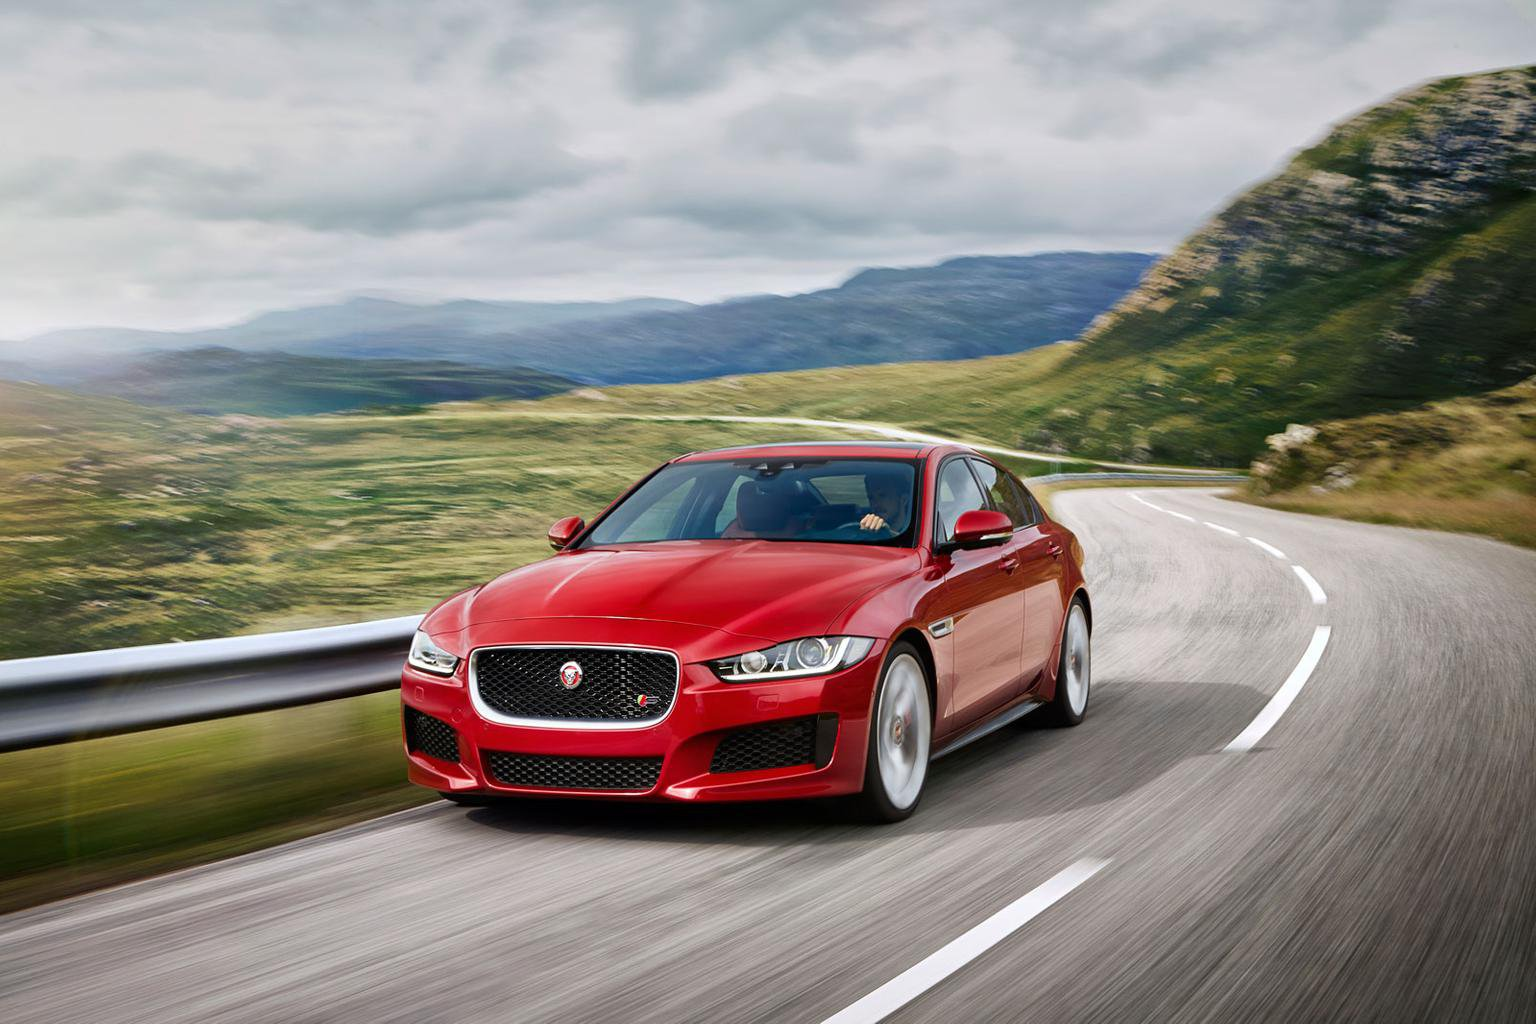 Be the first to see the new Jaguar XE